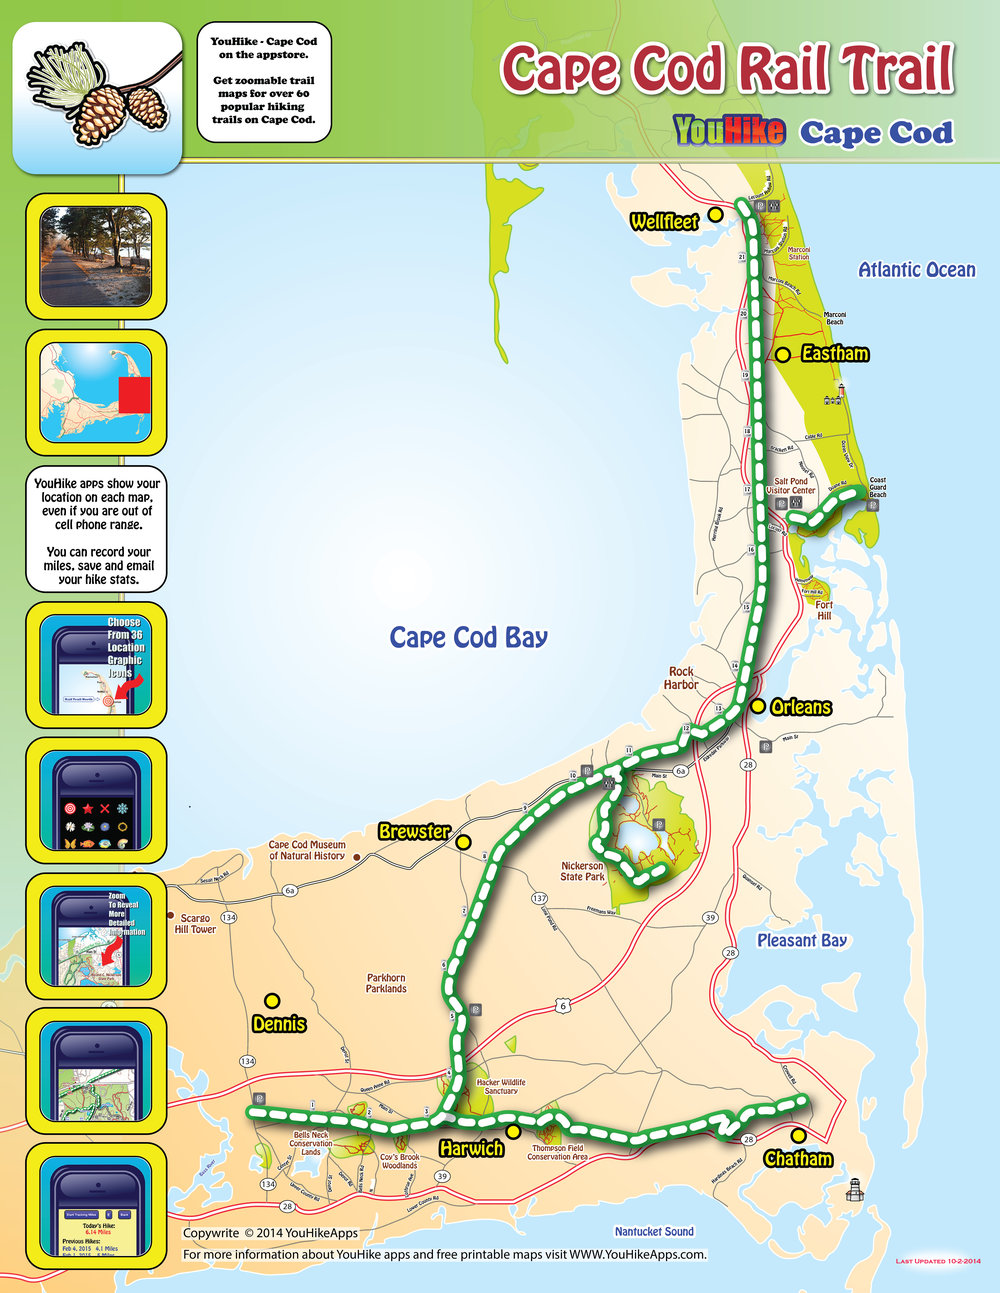 YouHike_CapeCod__RailTrailFull__Map_JPEG_Color.jpg